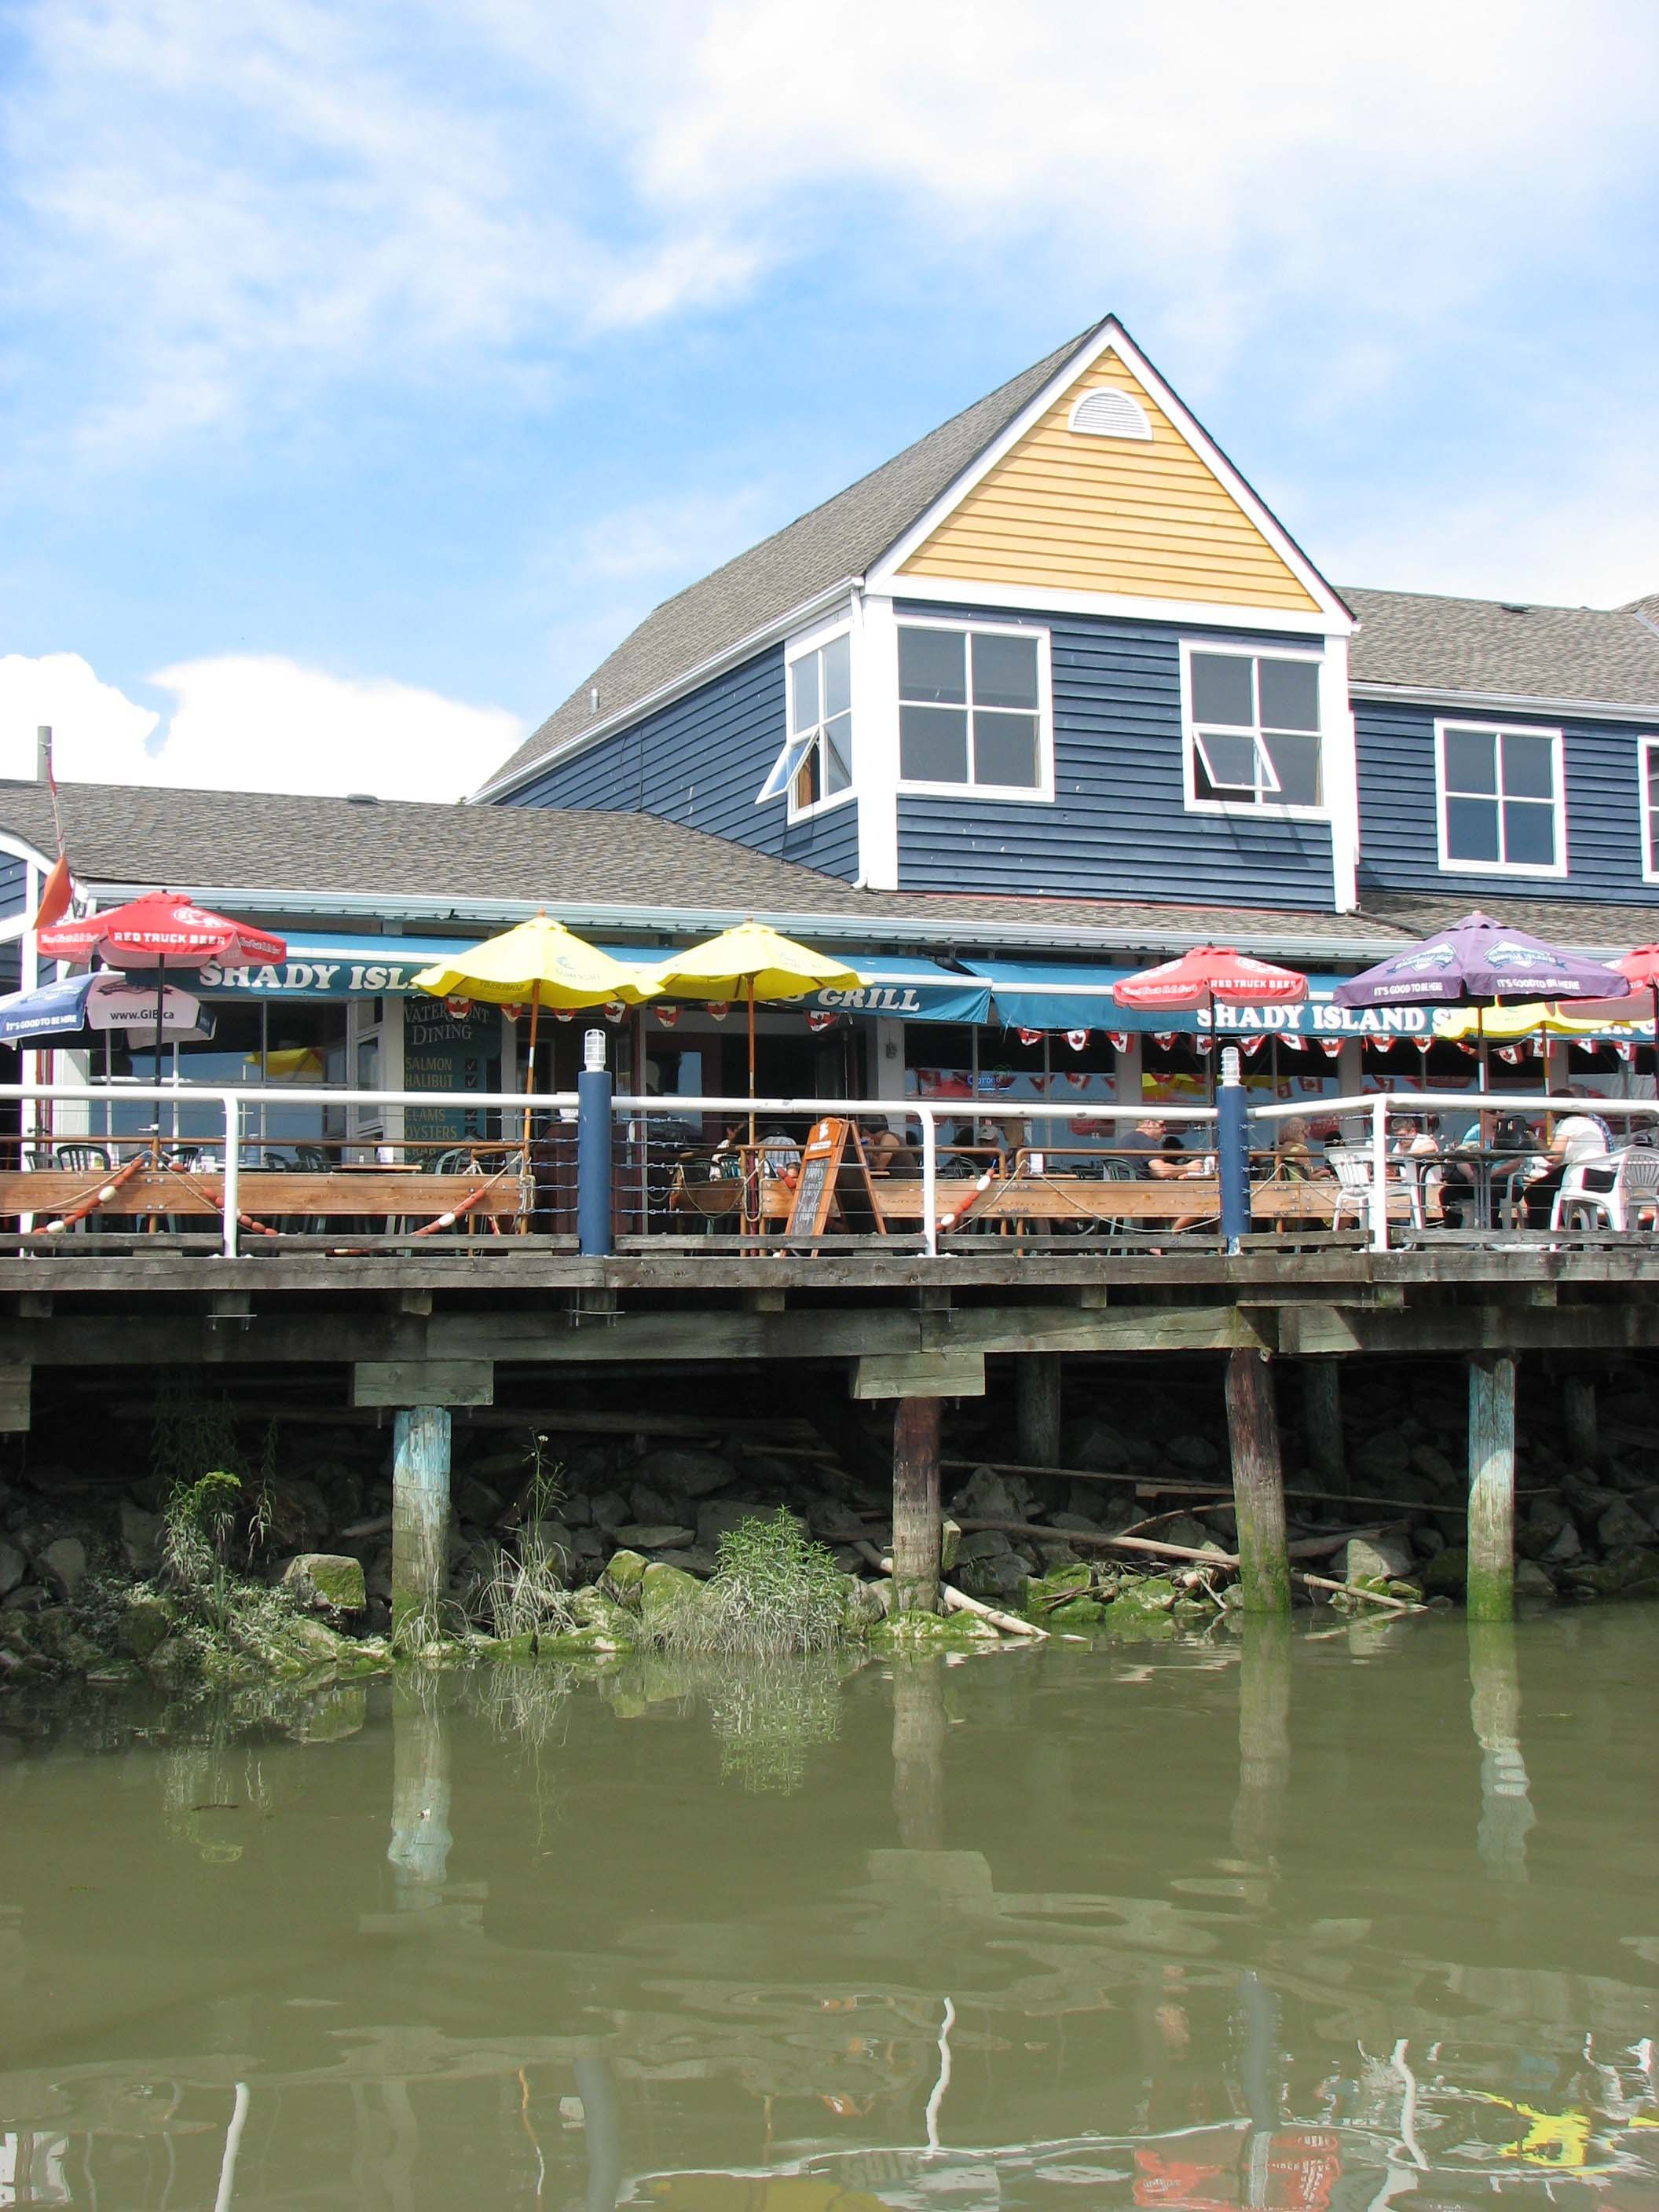 Restaurant at Steveston Harbour's Fisherman's Wharf